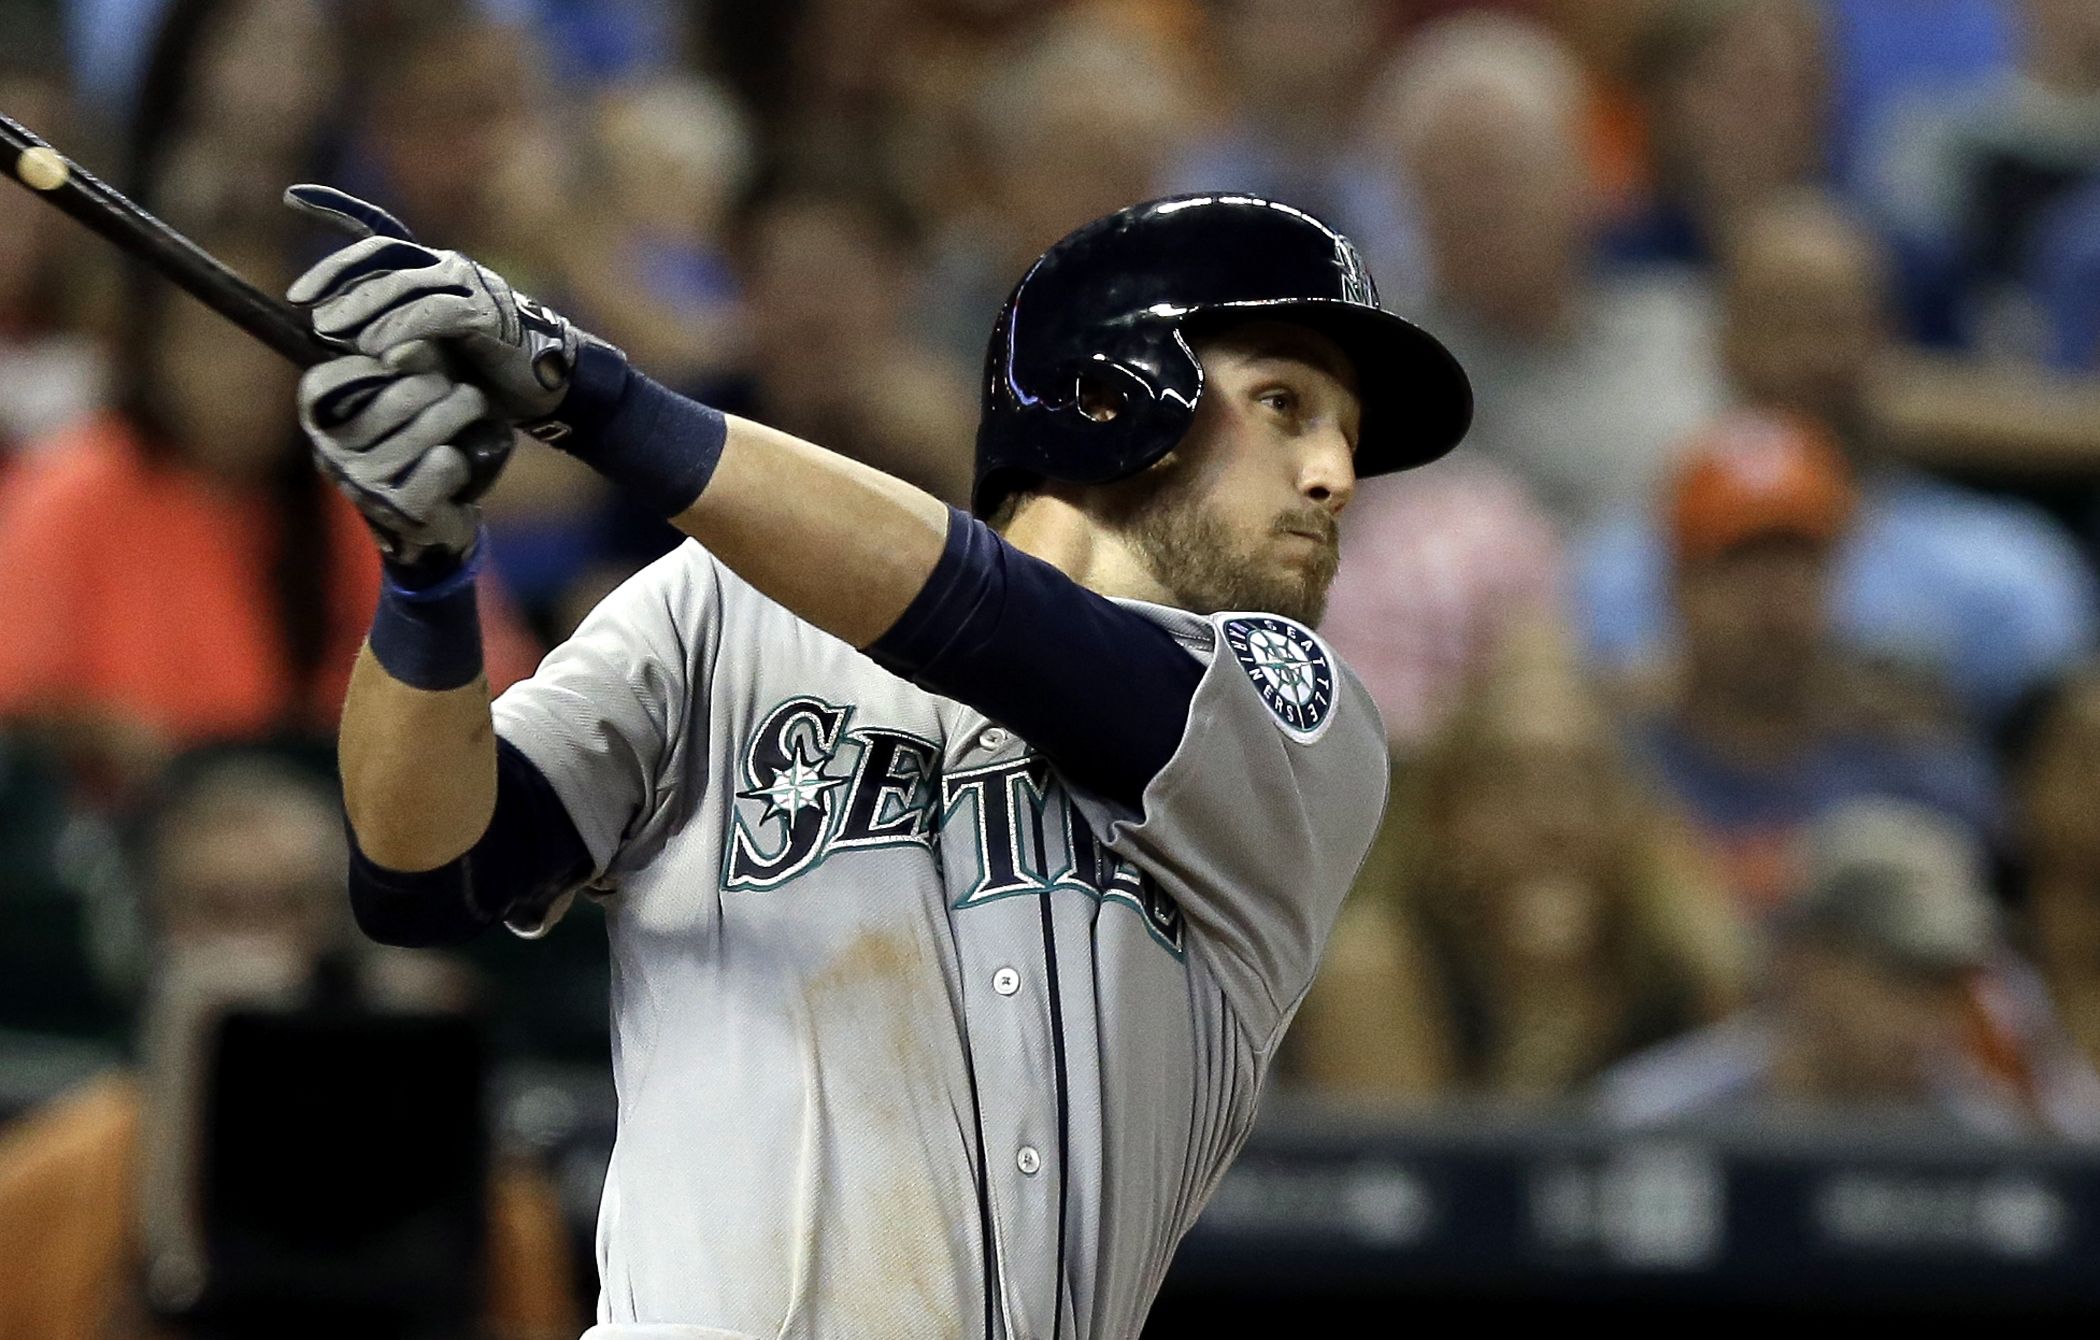 Seattle Mariners Sean O'Malley watches his RBI single against the Houston Astros during the eighth inning of a baseball game Wednesday, Sept. 2, 2015, in Houston. (AP Photo/Pat Sullivan)